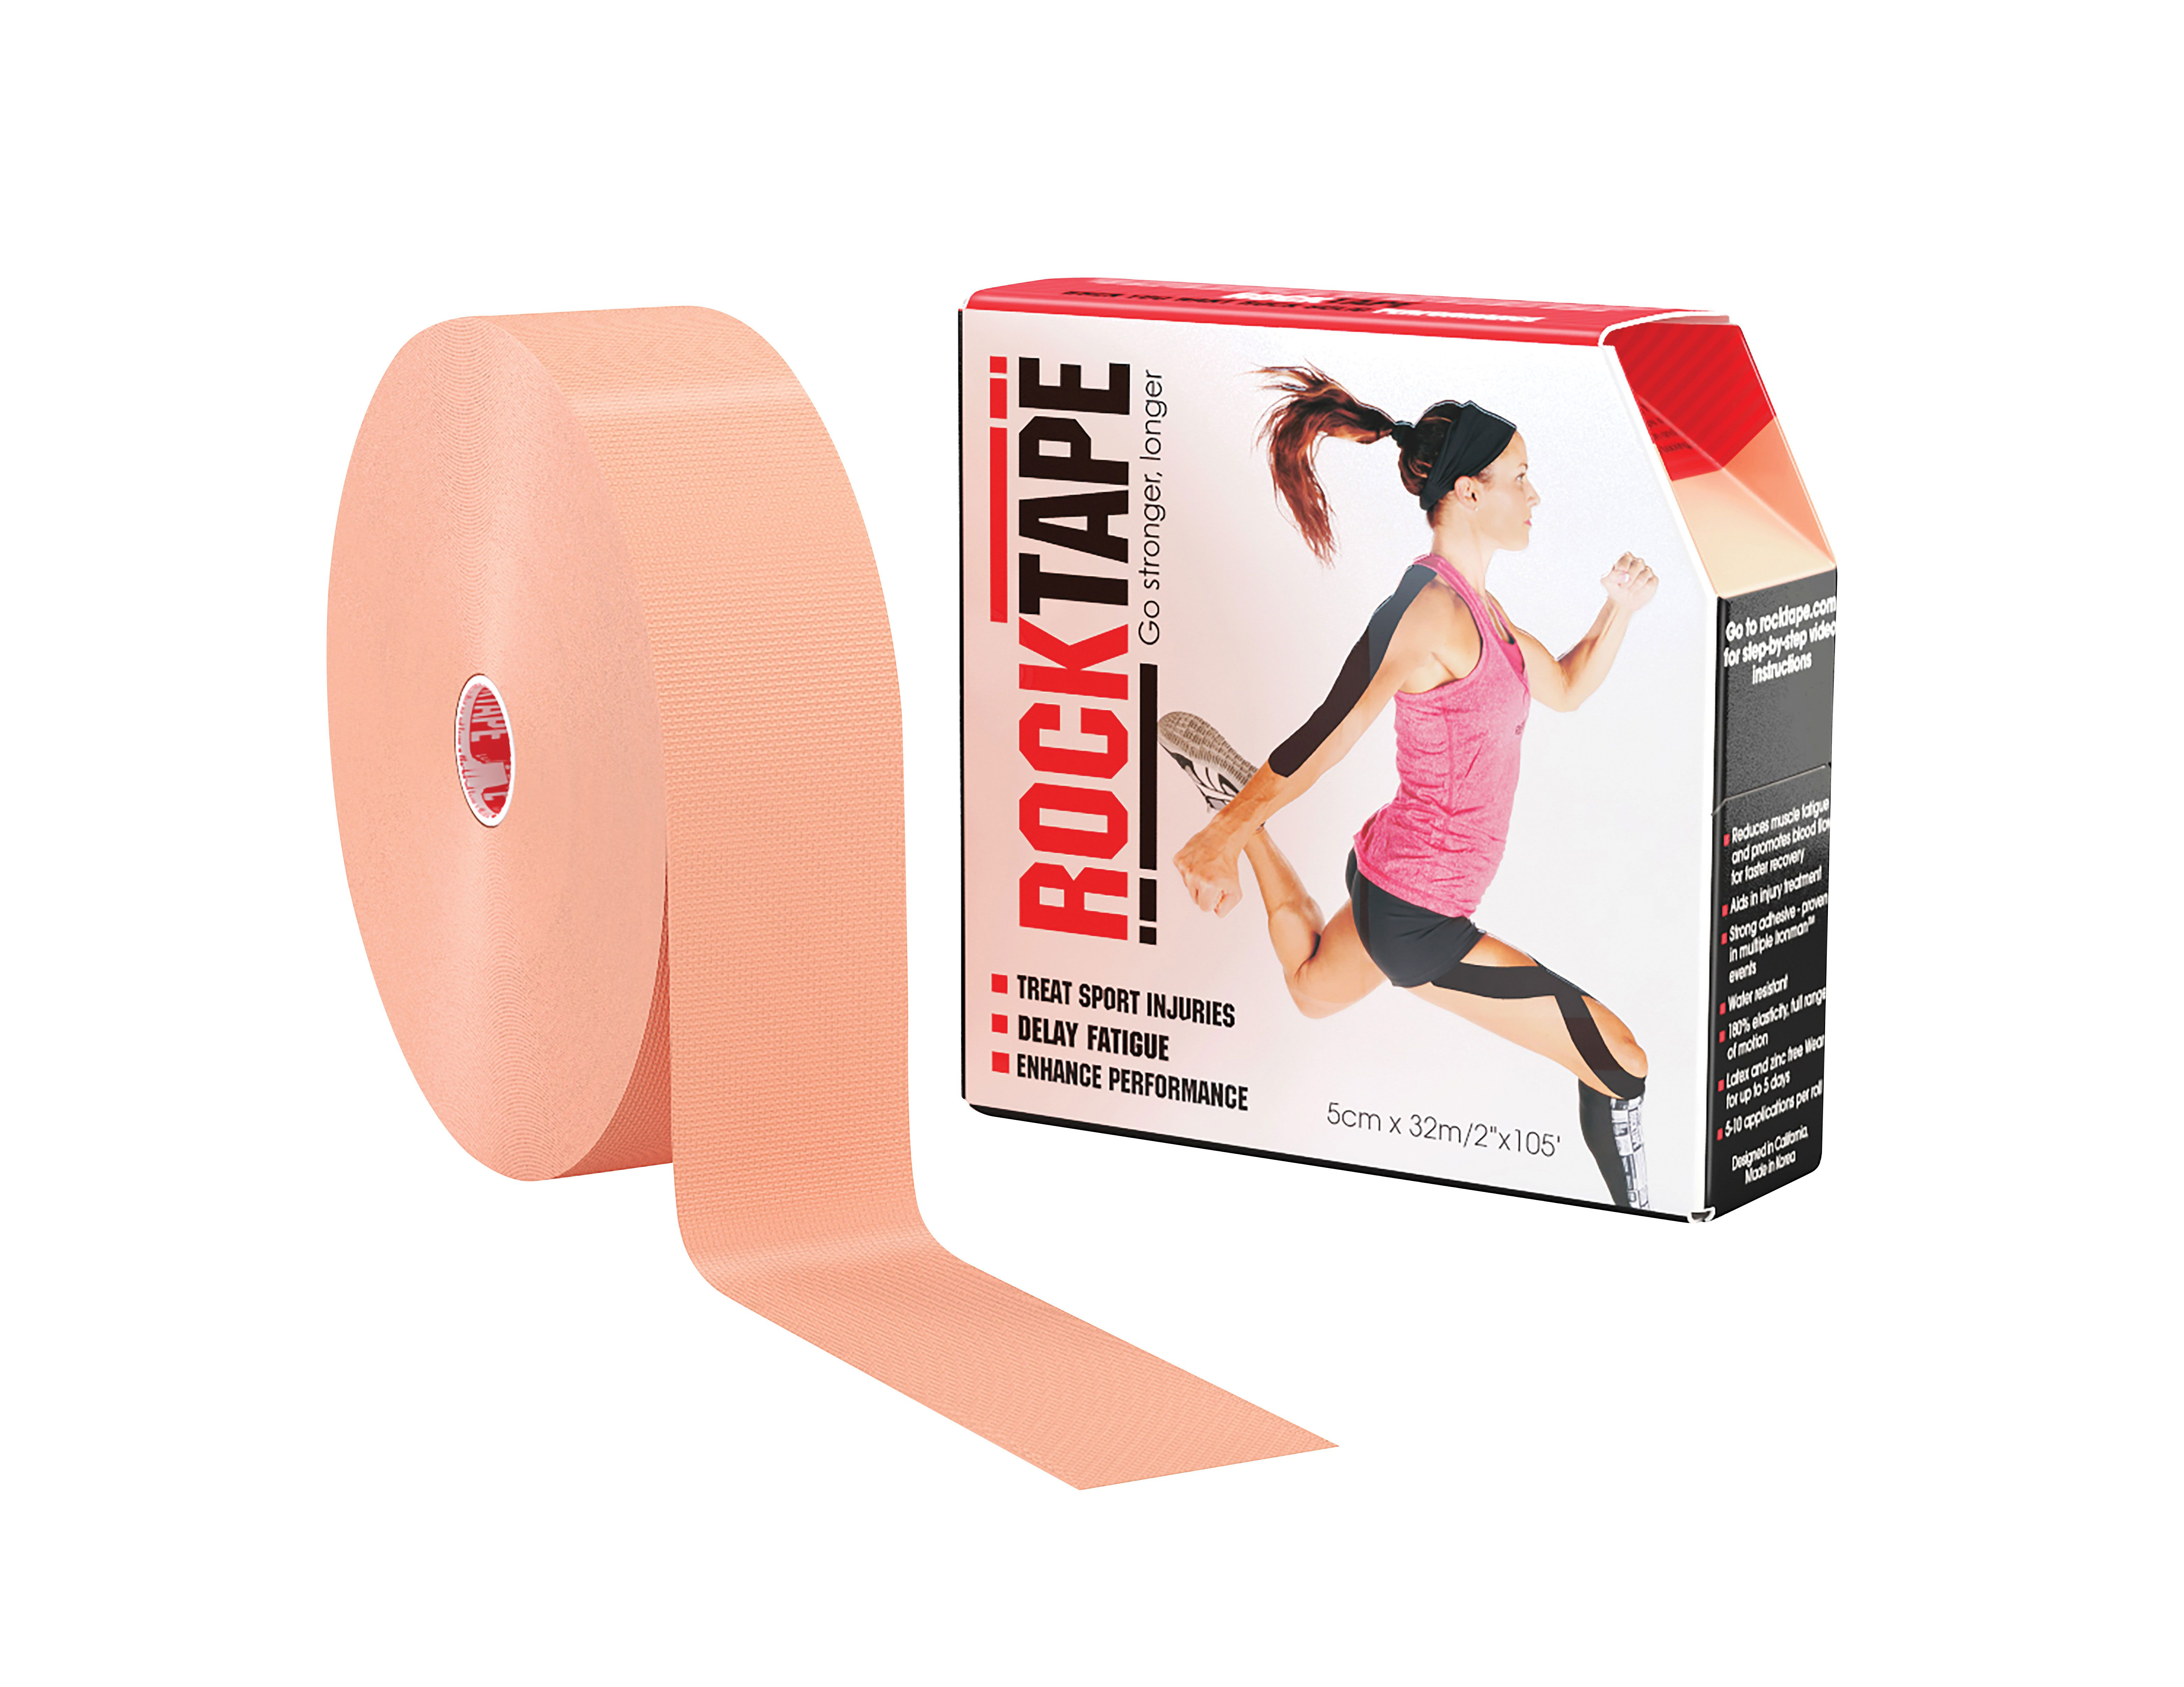 NEW from RockTape, meet RockBand Flex. Rehabilitation, mobility and strength training in a single, elegant band. Explore Flex. Supercharge your stretch with RockFloss. Unglue sticky and stiff muscles, reduce joint pain, and improve flexibility. Available in 2